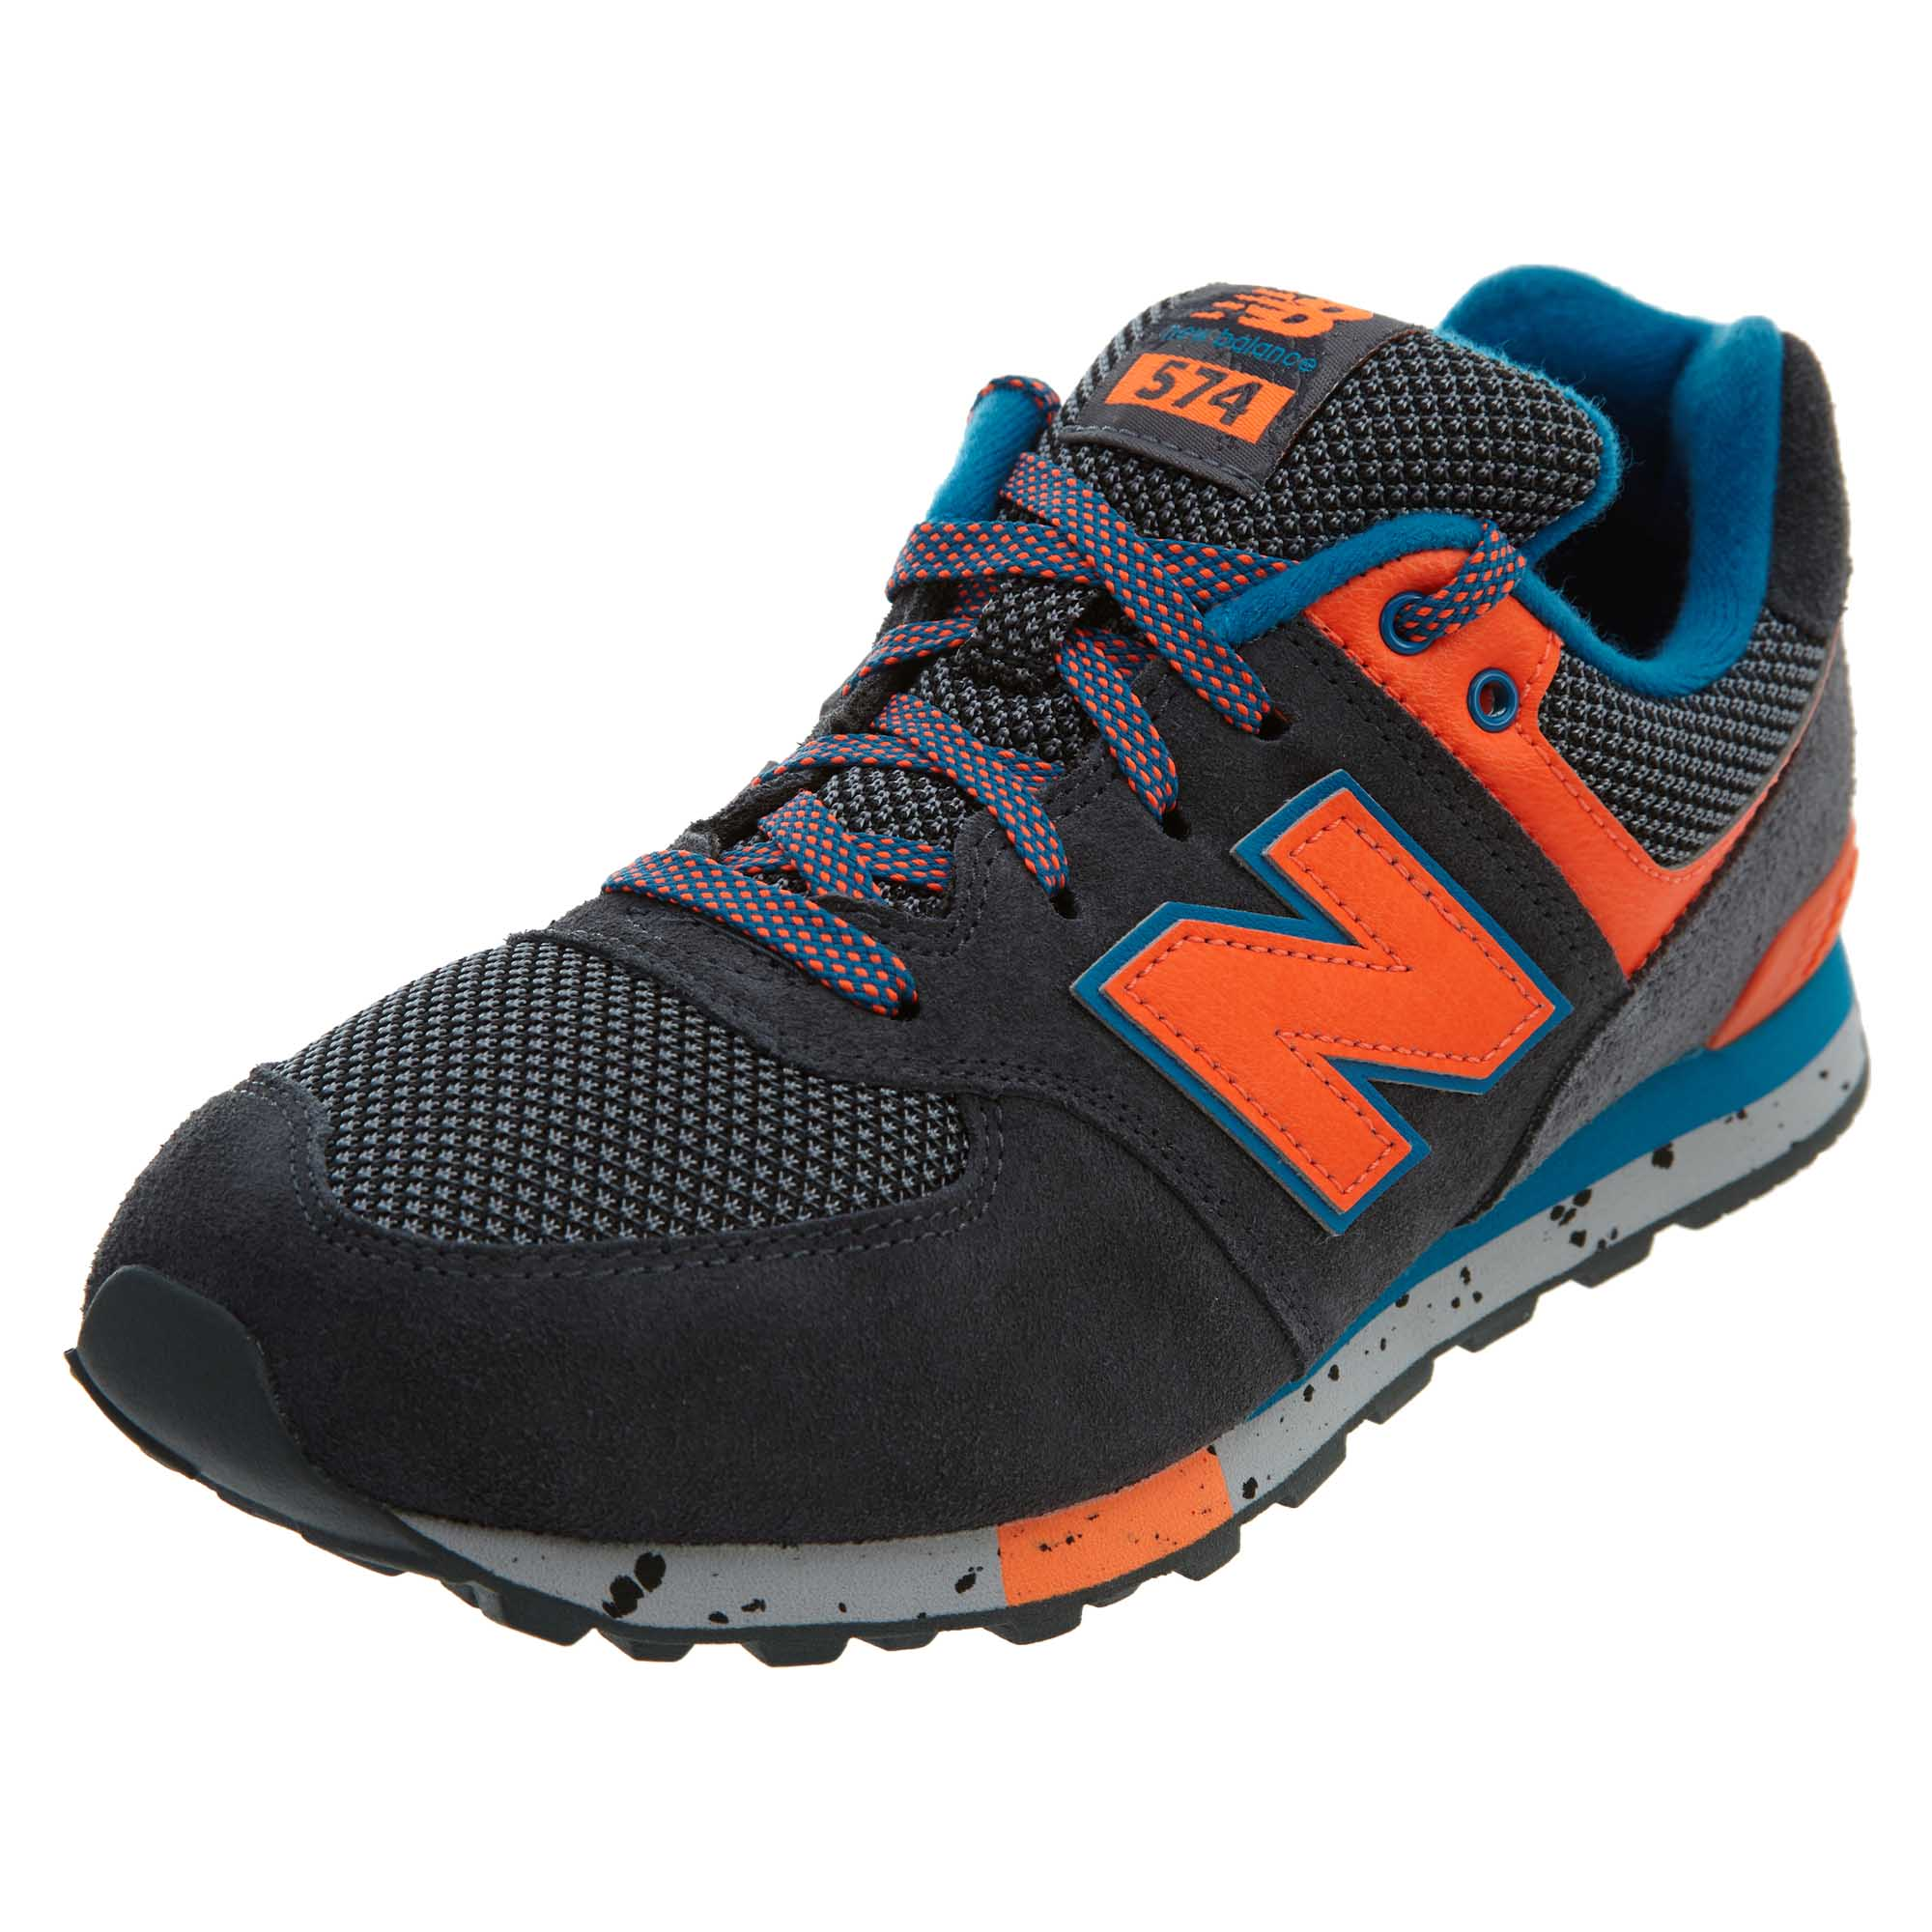 038110cb7eb93 Details about New Balance Big Kids 574 Classic Running Shoes Dark Grey/ Orange/Blue KL574-9OG